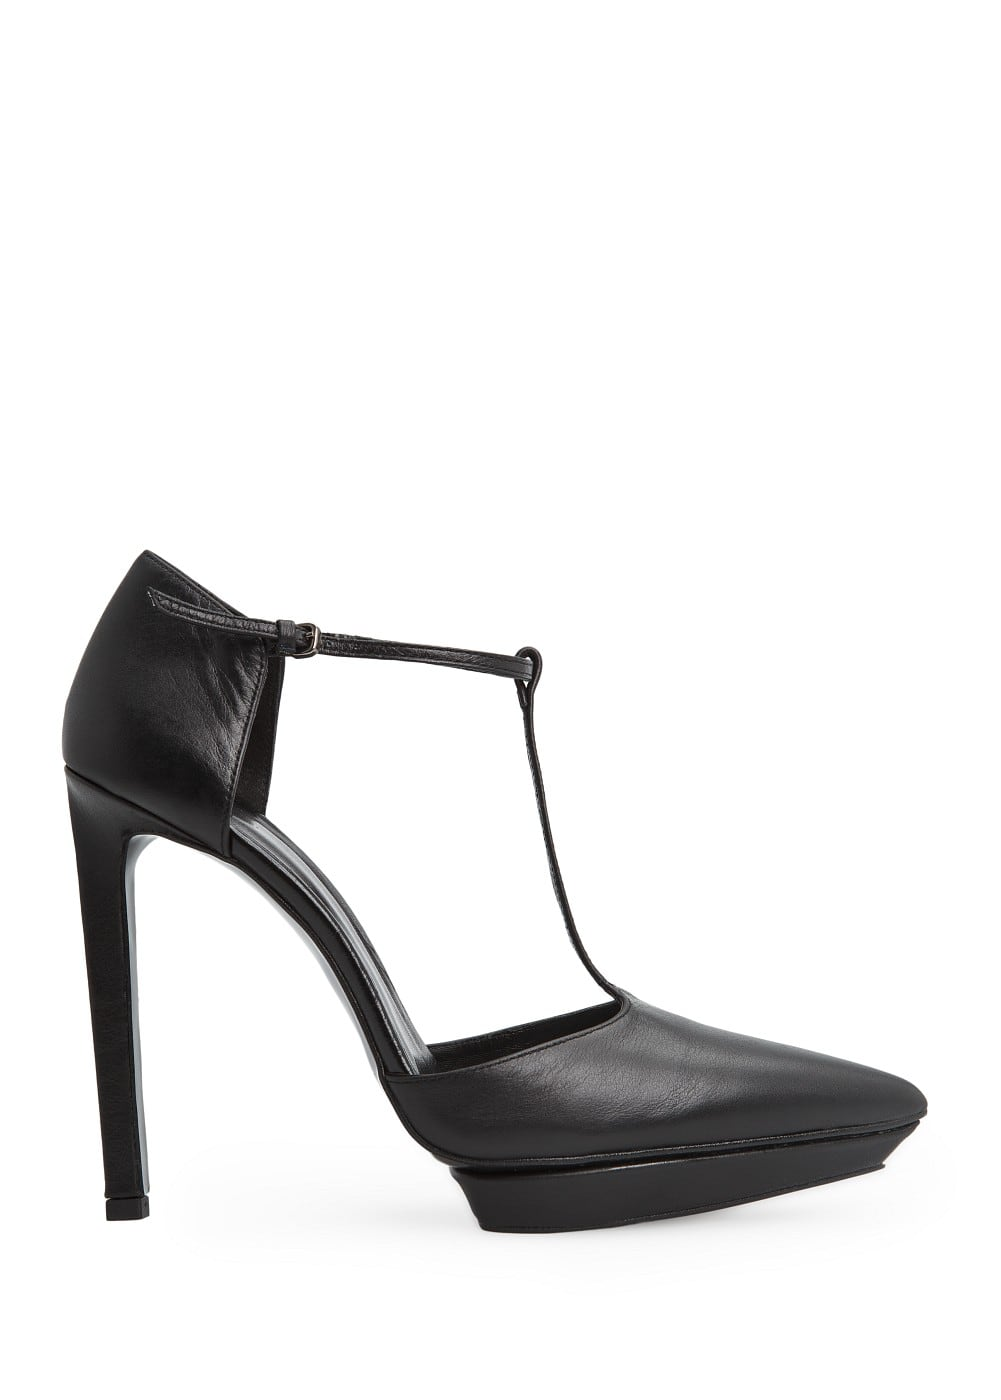 T-bar leather pumps